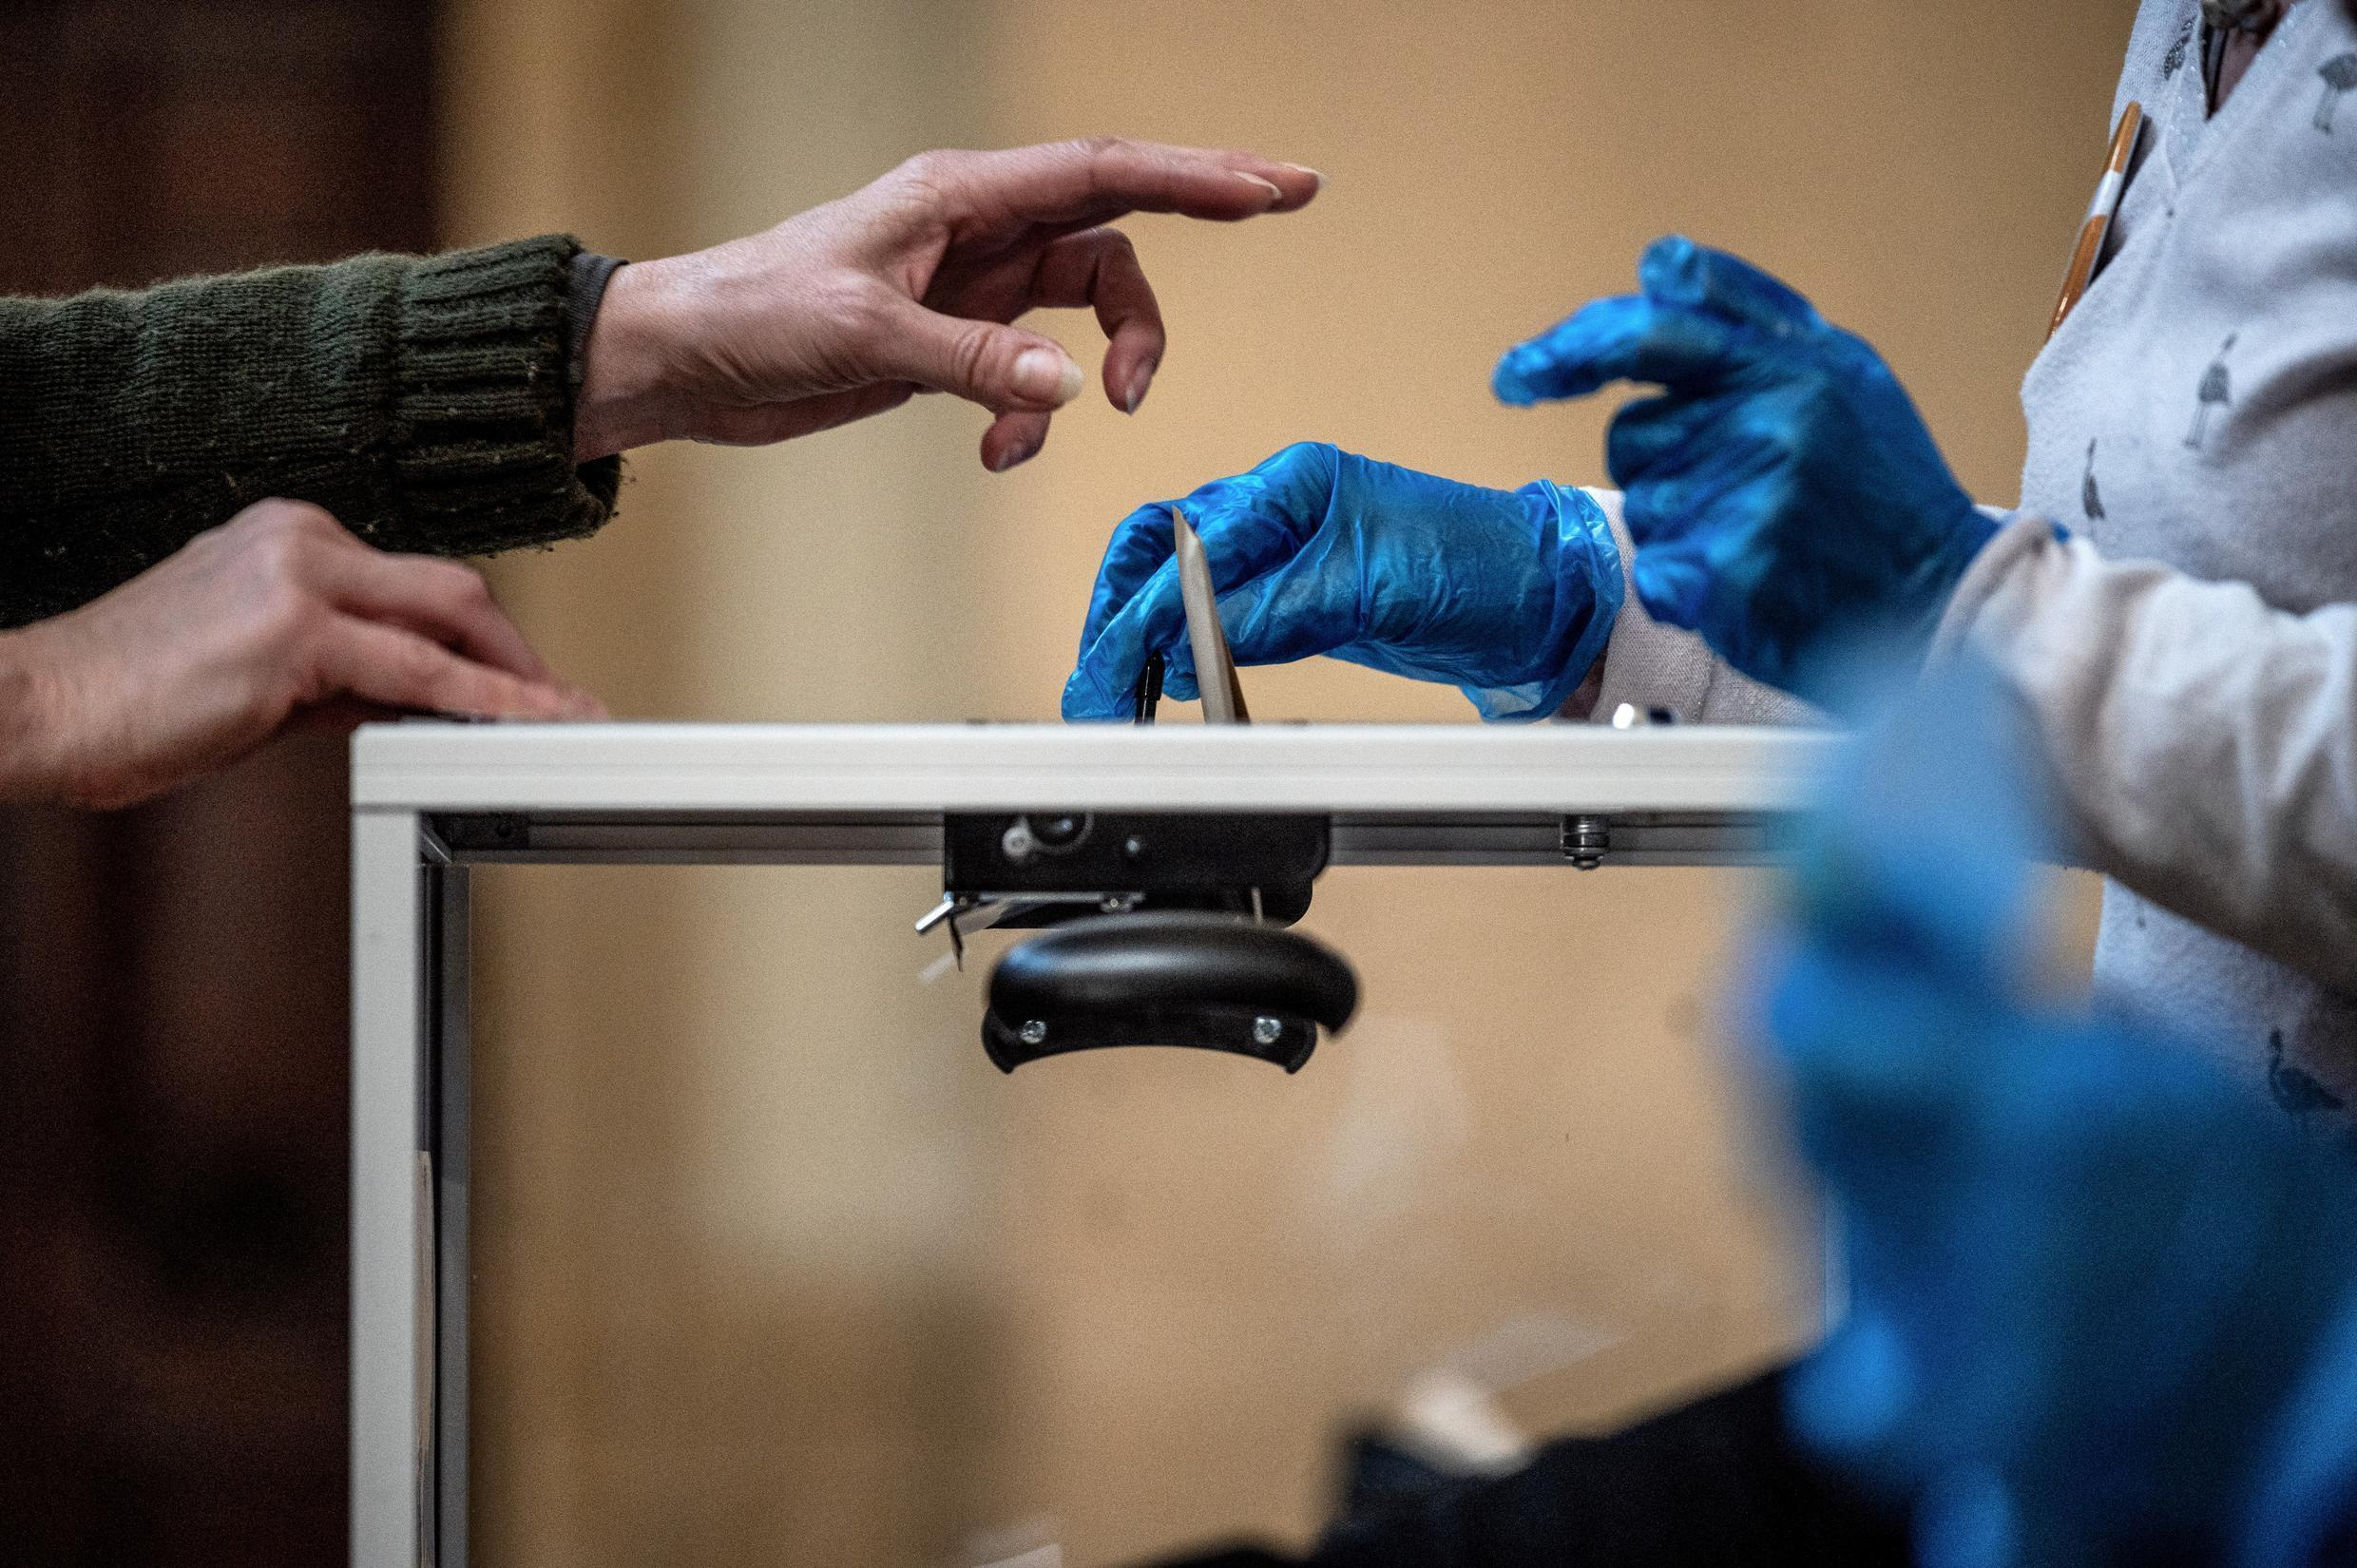 The first round of French municipal elections at a polling station in Lyon on March 15, 2020, two days before the beginning of France's Covid-19 lockdown.